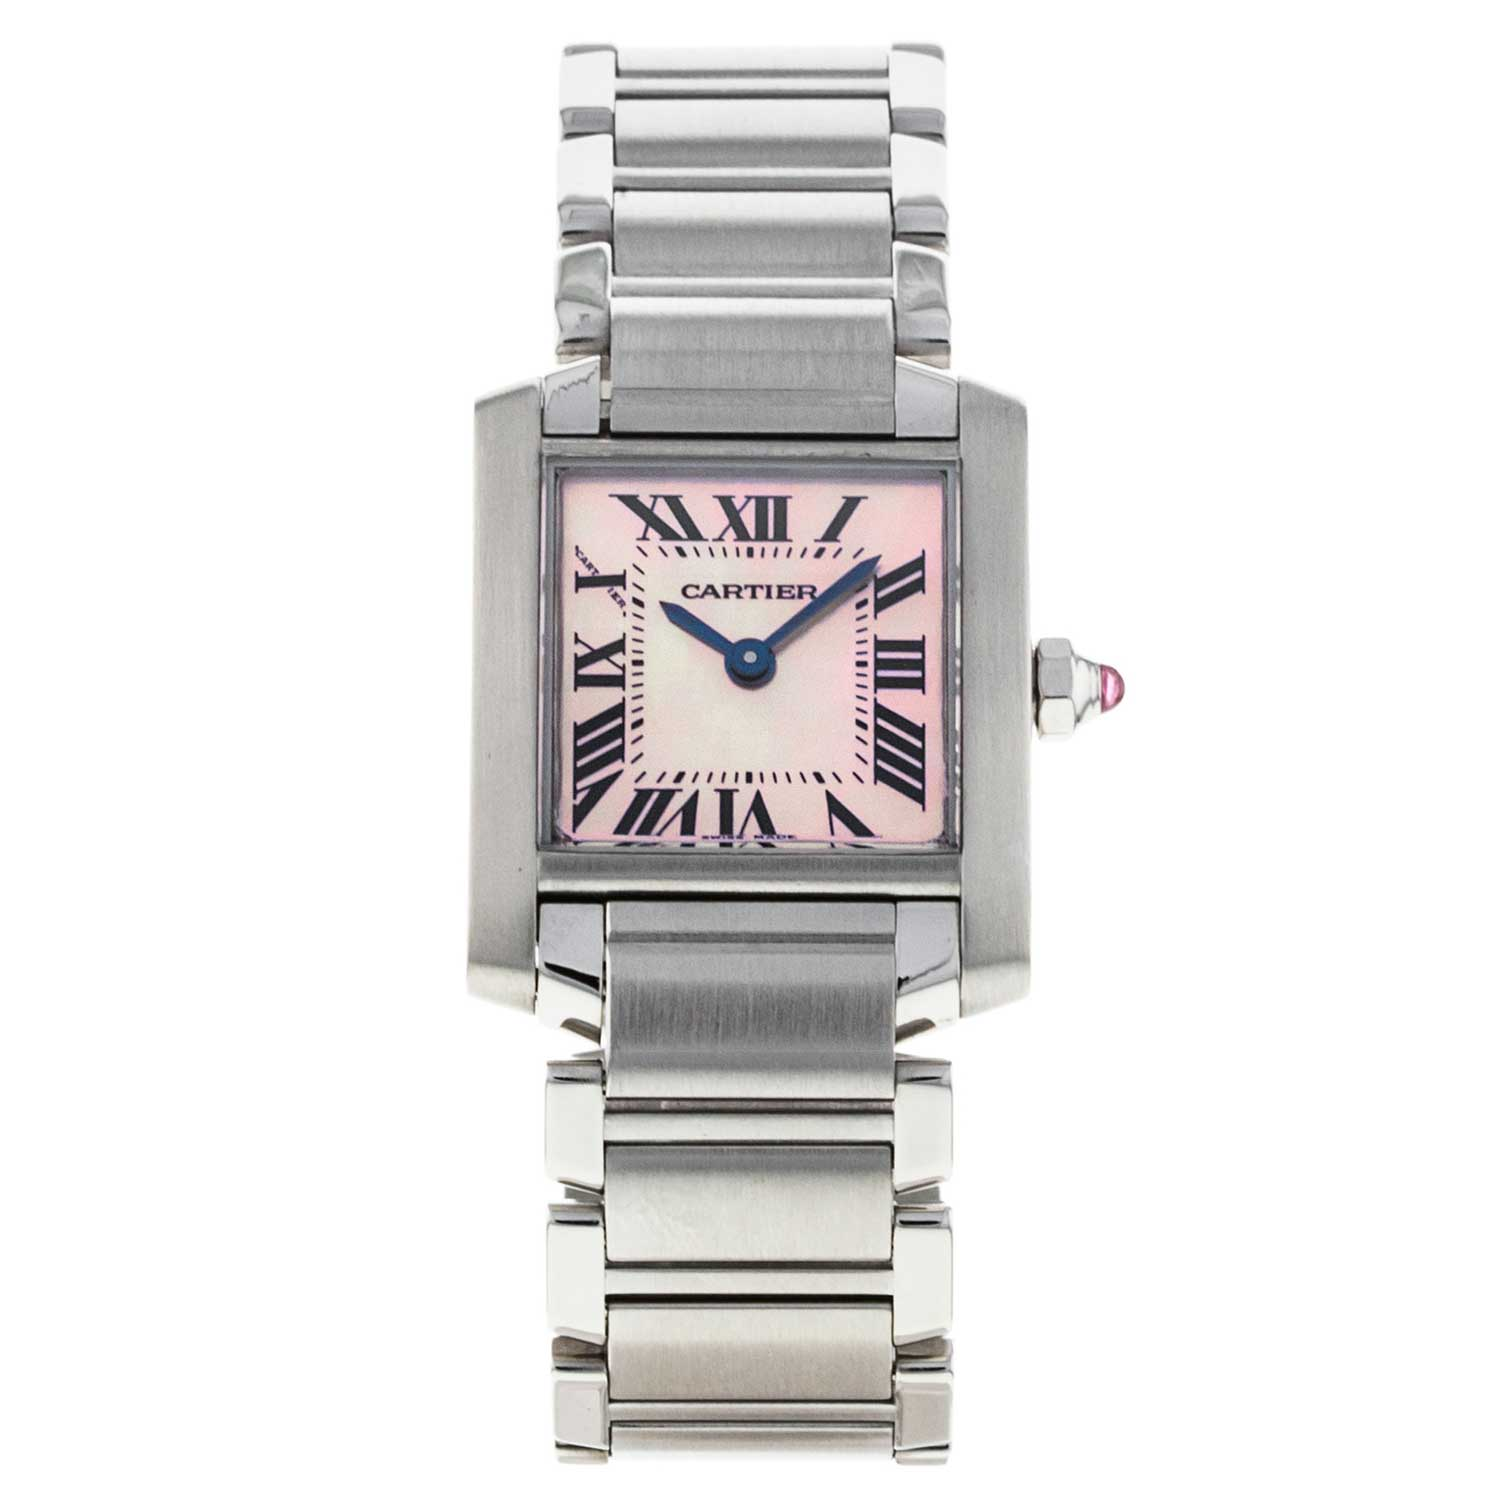 The pink mother of pearl dial adds a feminine air to this 20mm case.